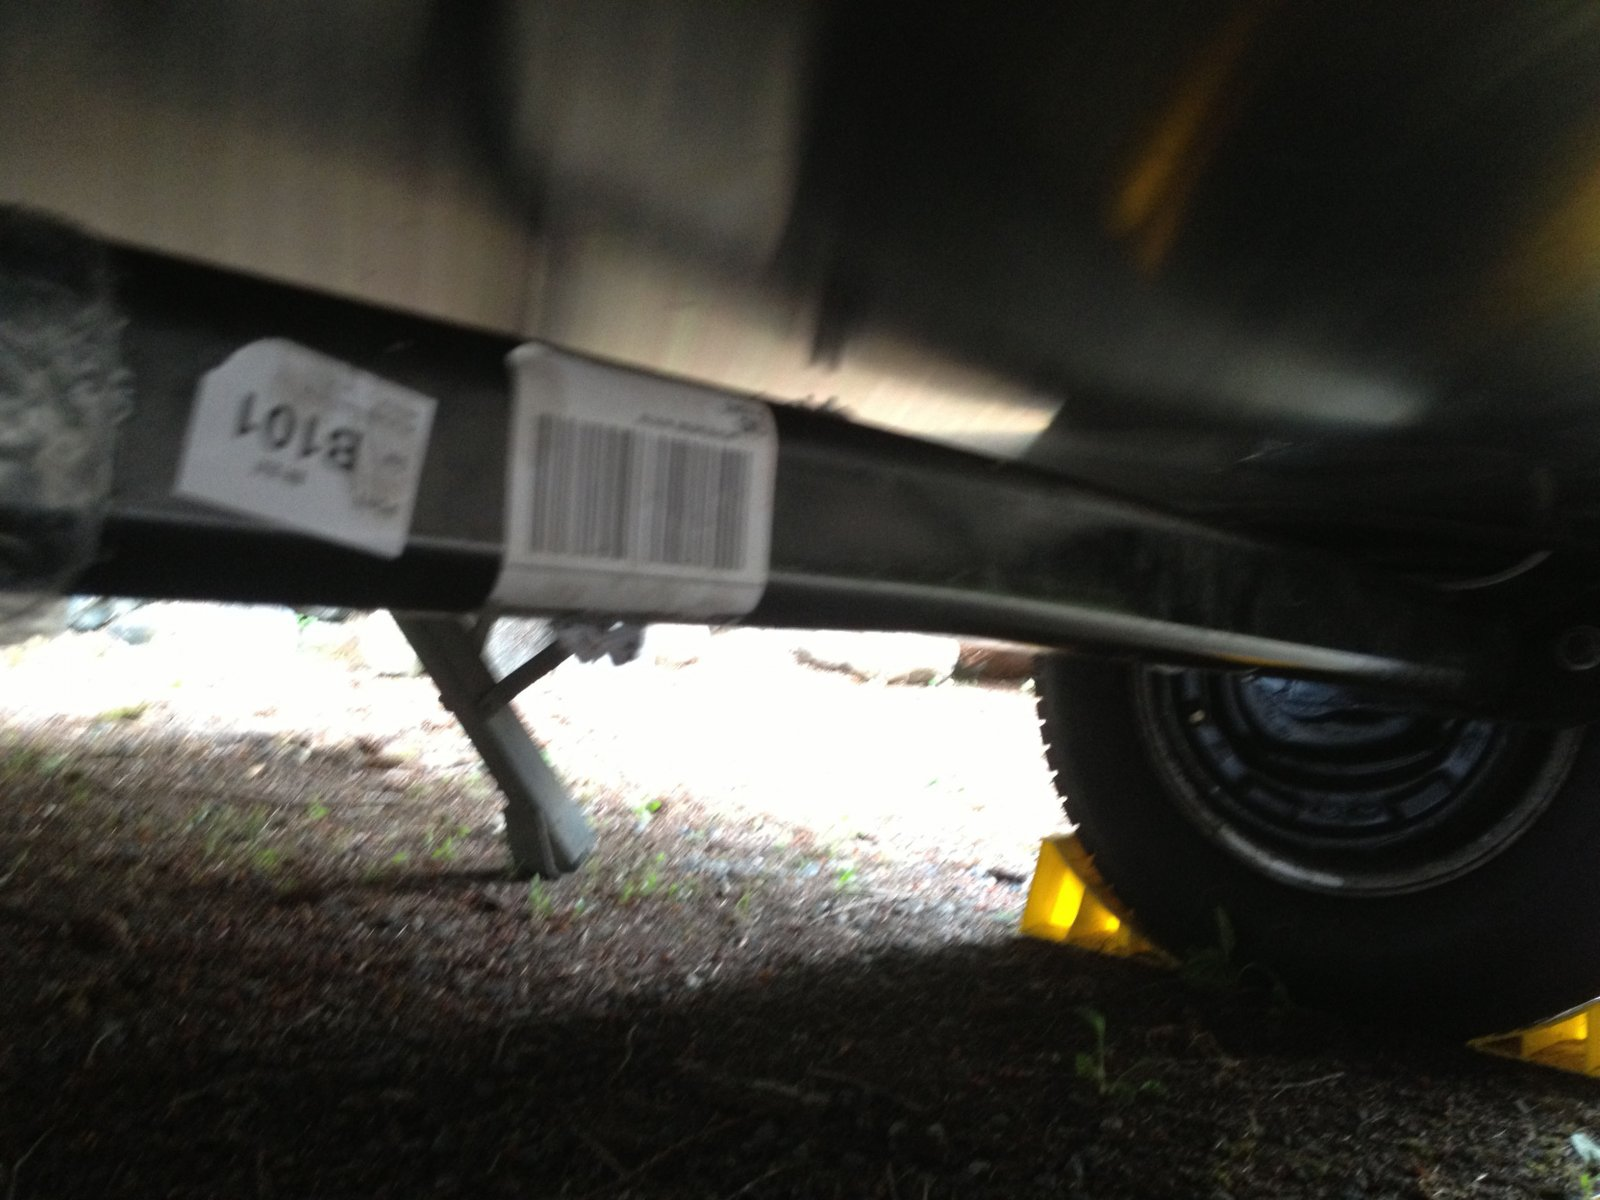 Click image for larger version  Name:Bent axle 8_26_2013 445 pm.jpg Views:533 Size:212.9 KB ID:194260